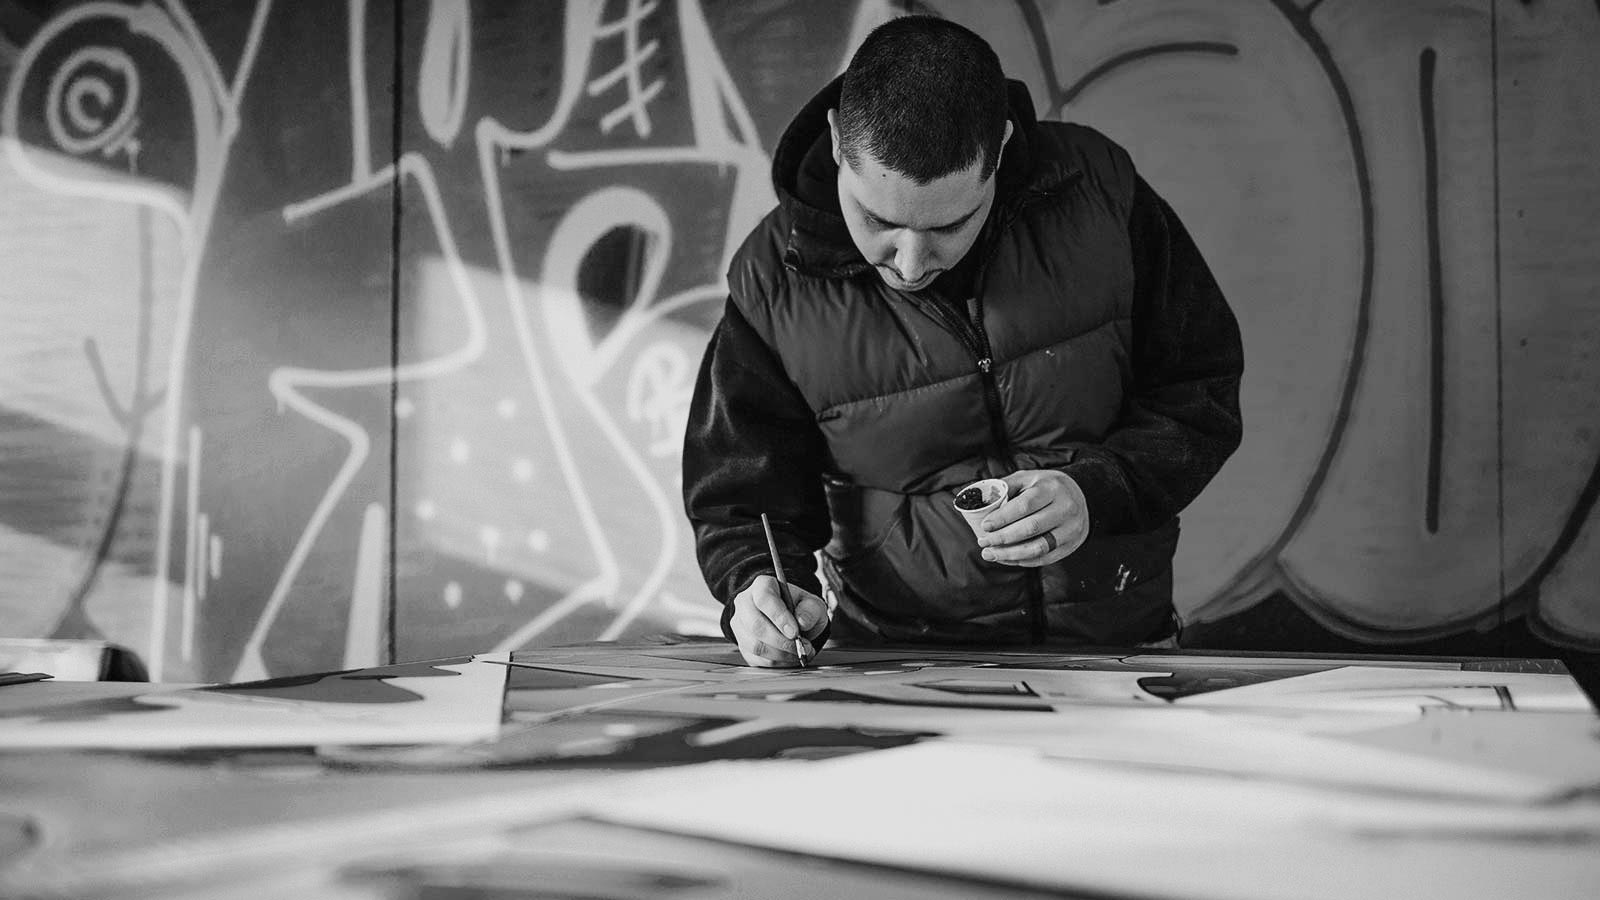 Pauser Czech graffiti artist interview